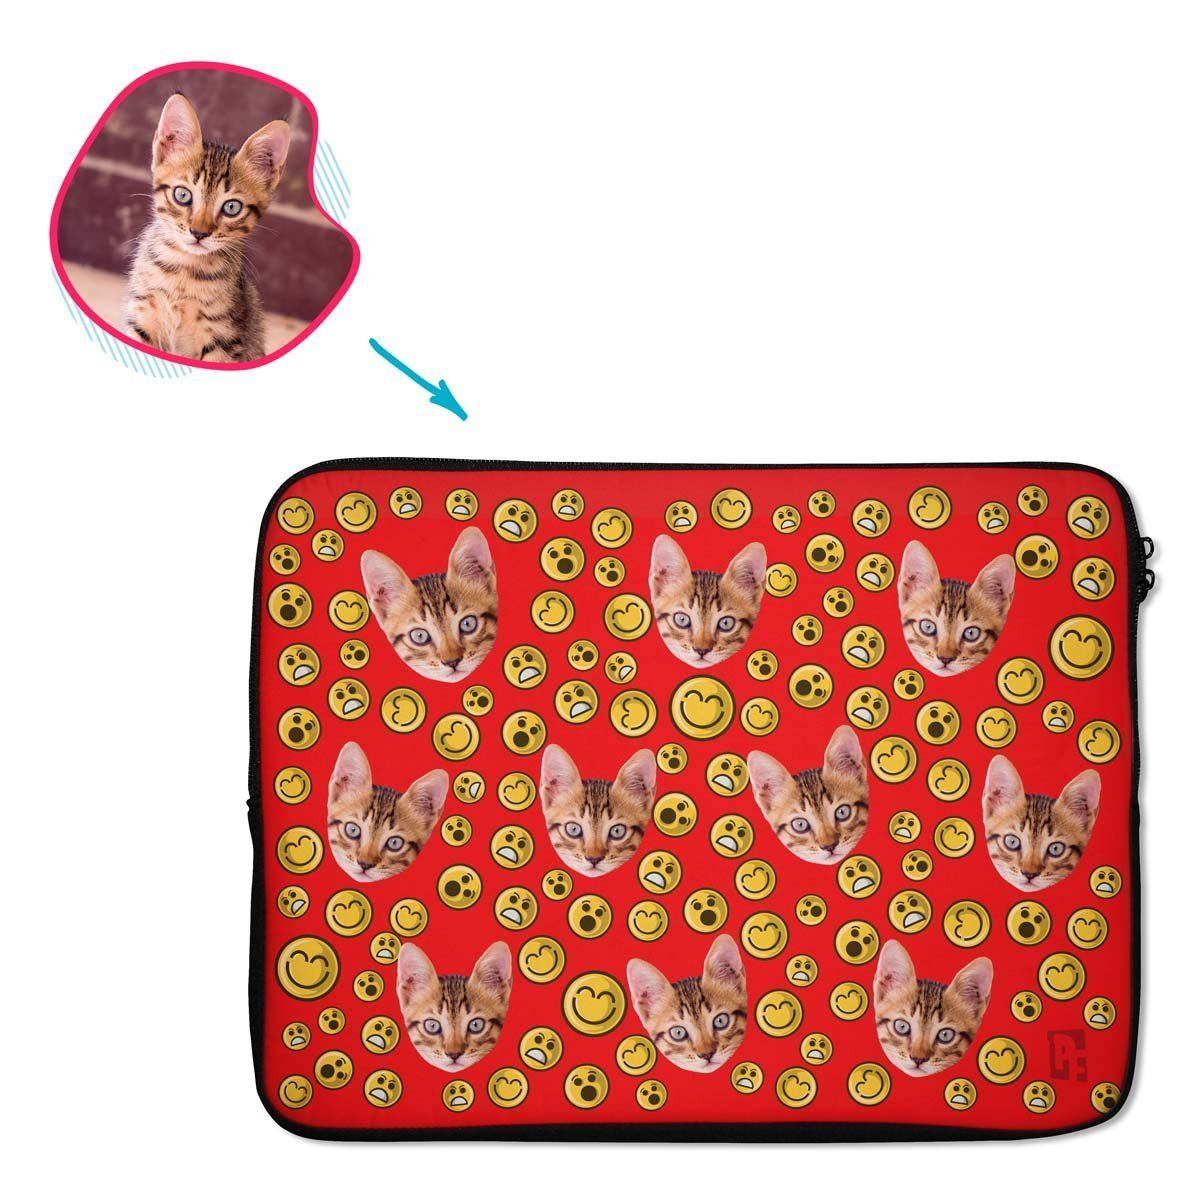 red Smiles laptop sleeve personalized with photo of face printed on them